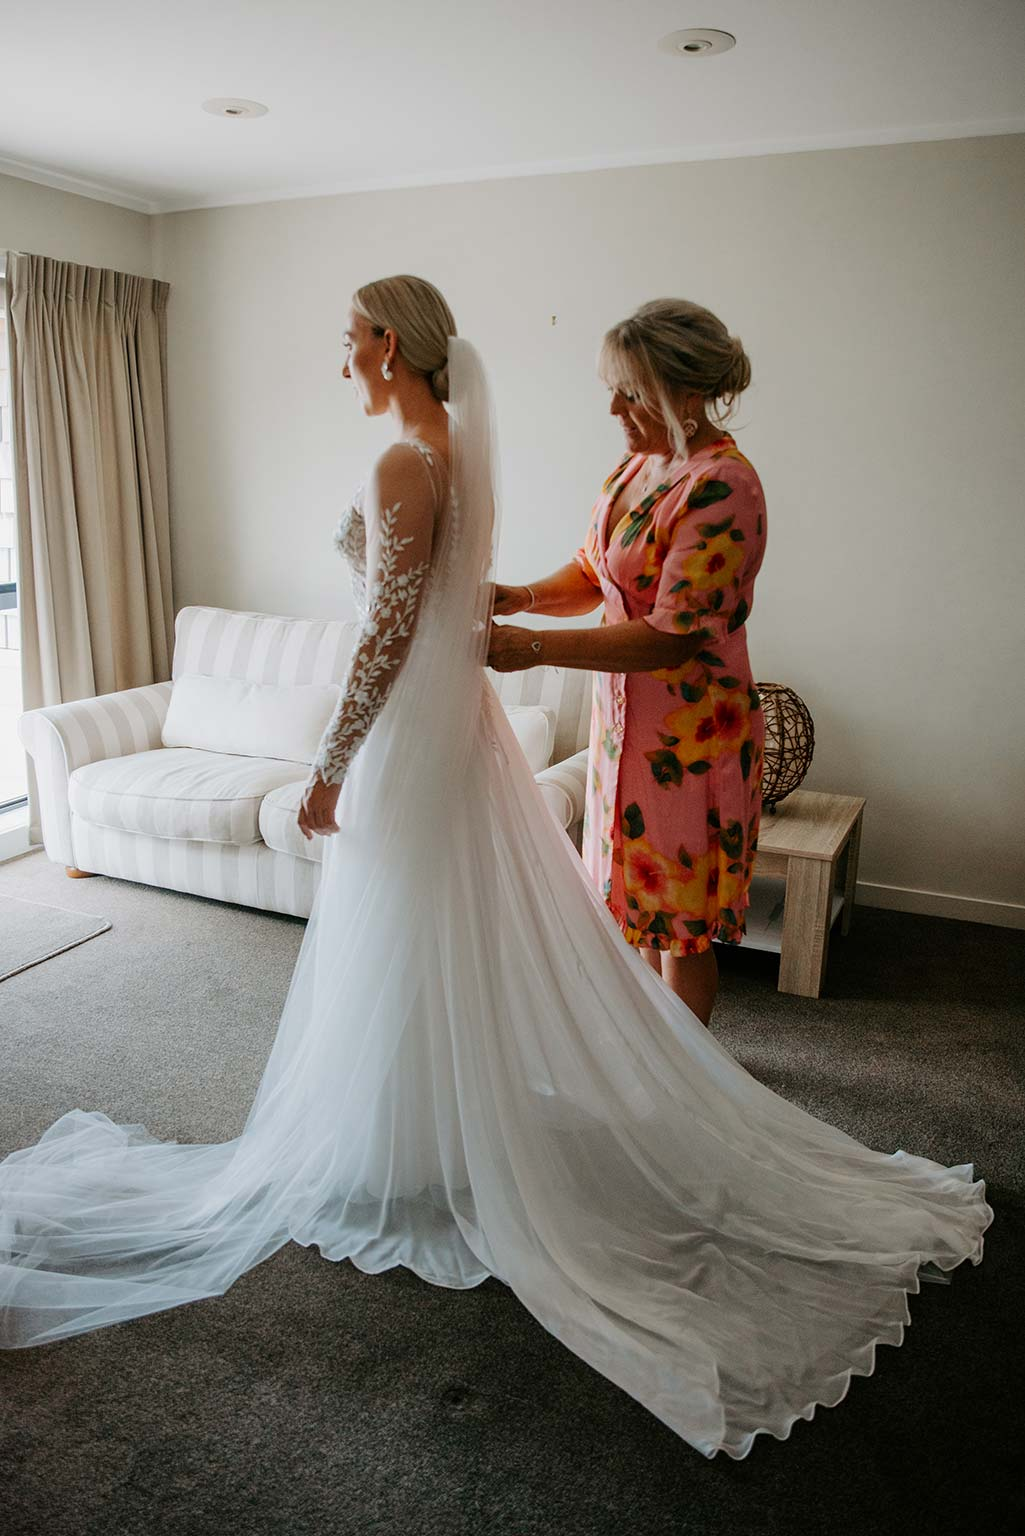 Vinka Design Features Real Weddings - bride getting ready - wearing a bespoke Makaira gown with silk-chiffon and tulle overskirt giving her a beautiful train which could be removed later on to reveal a floor length party dress